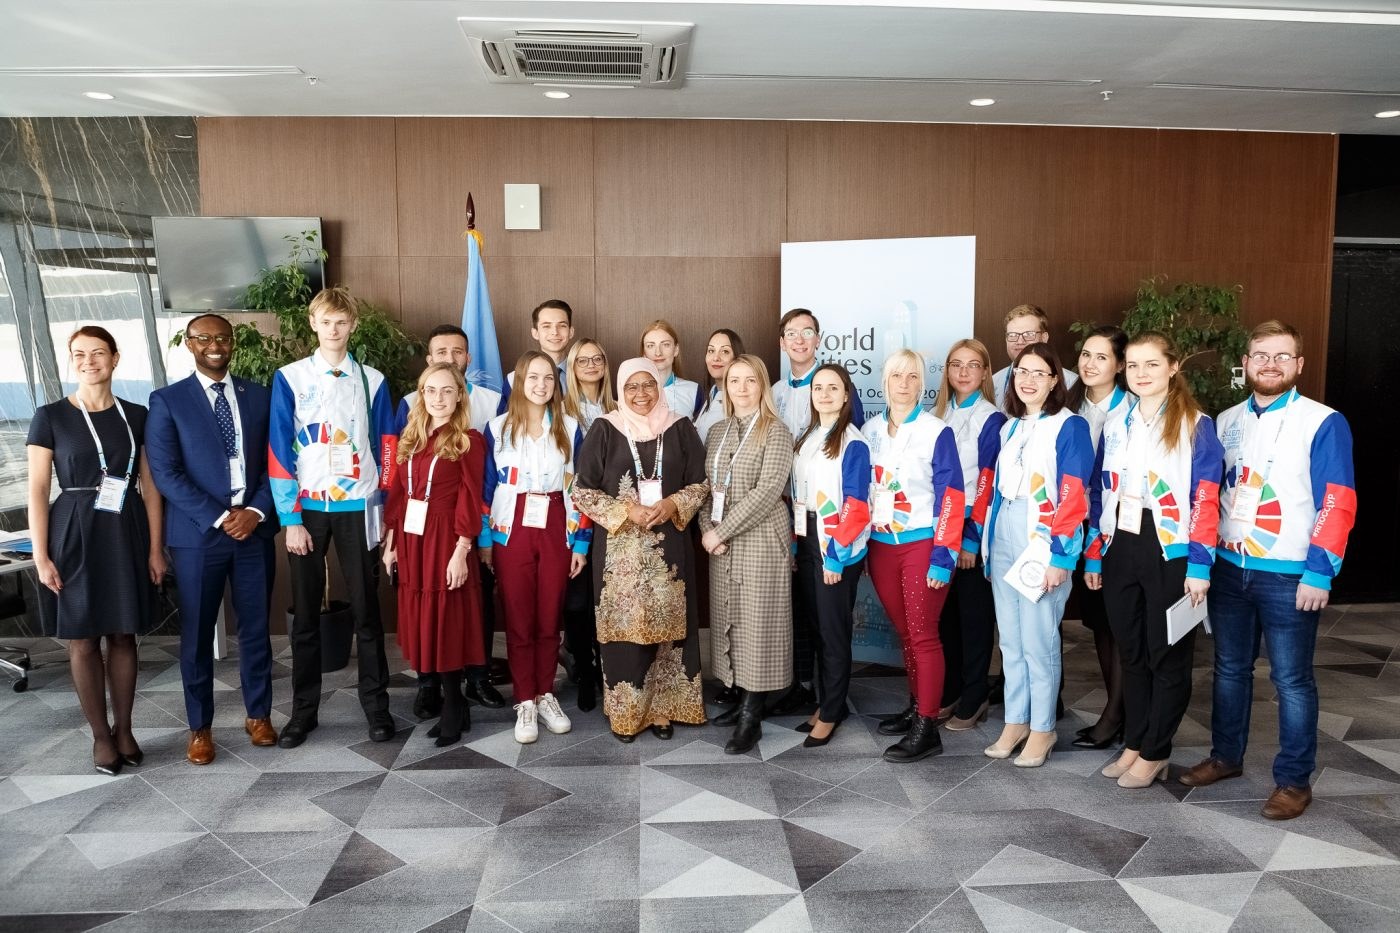 Ekaterina Petrunina spoke at the World Cities Day in Ekaterinburg